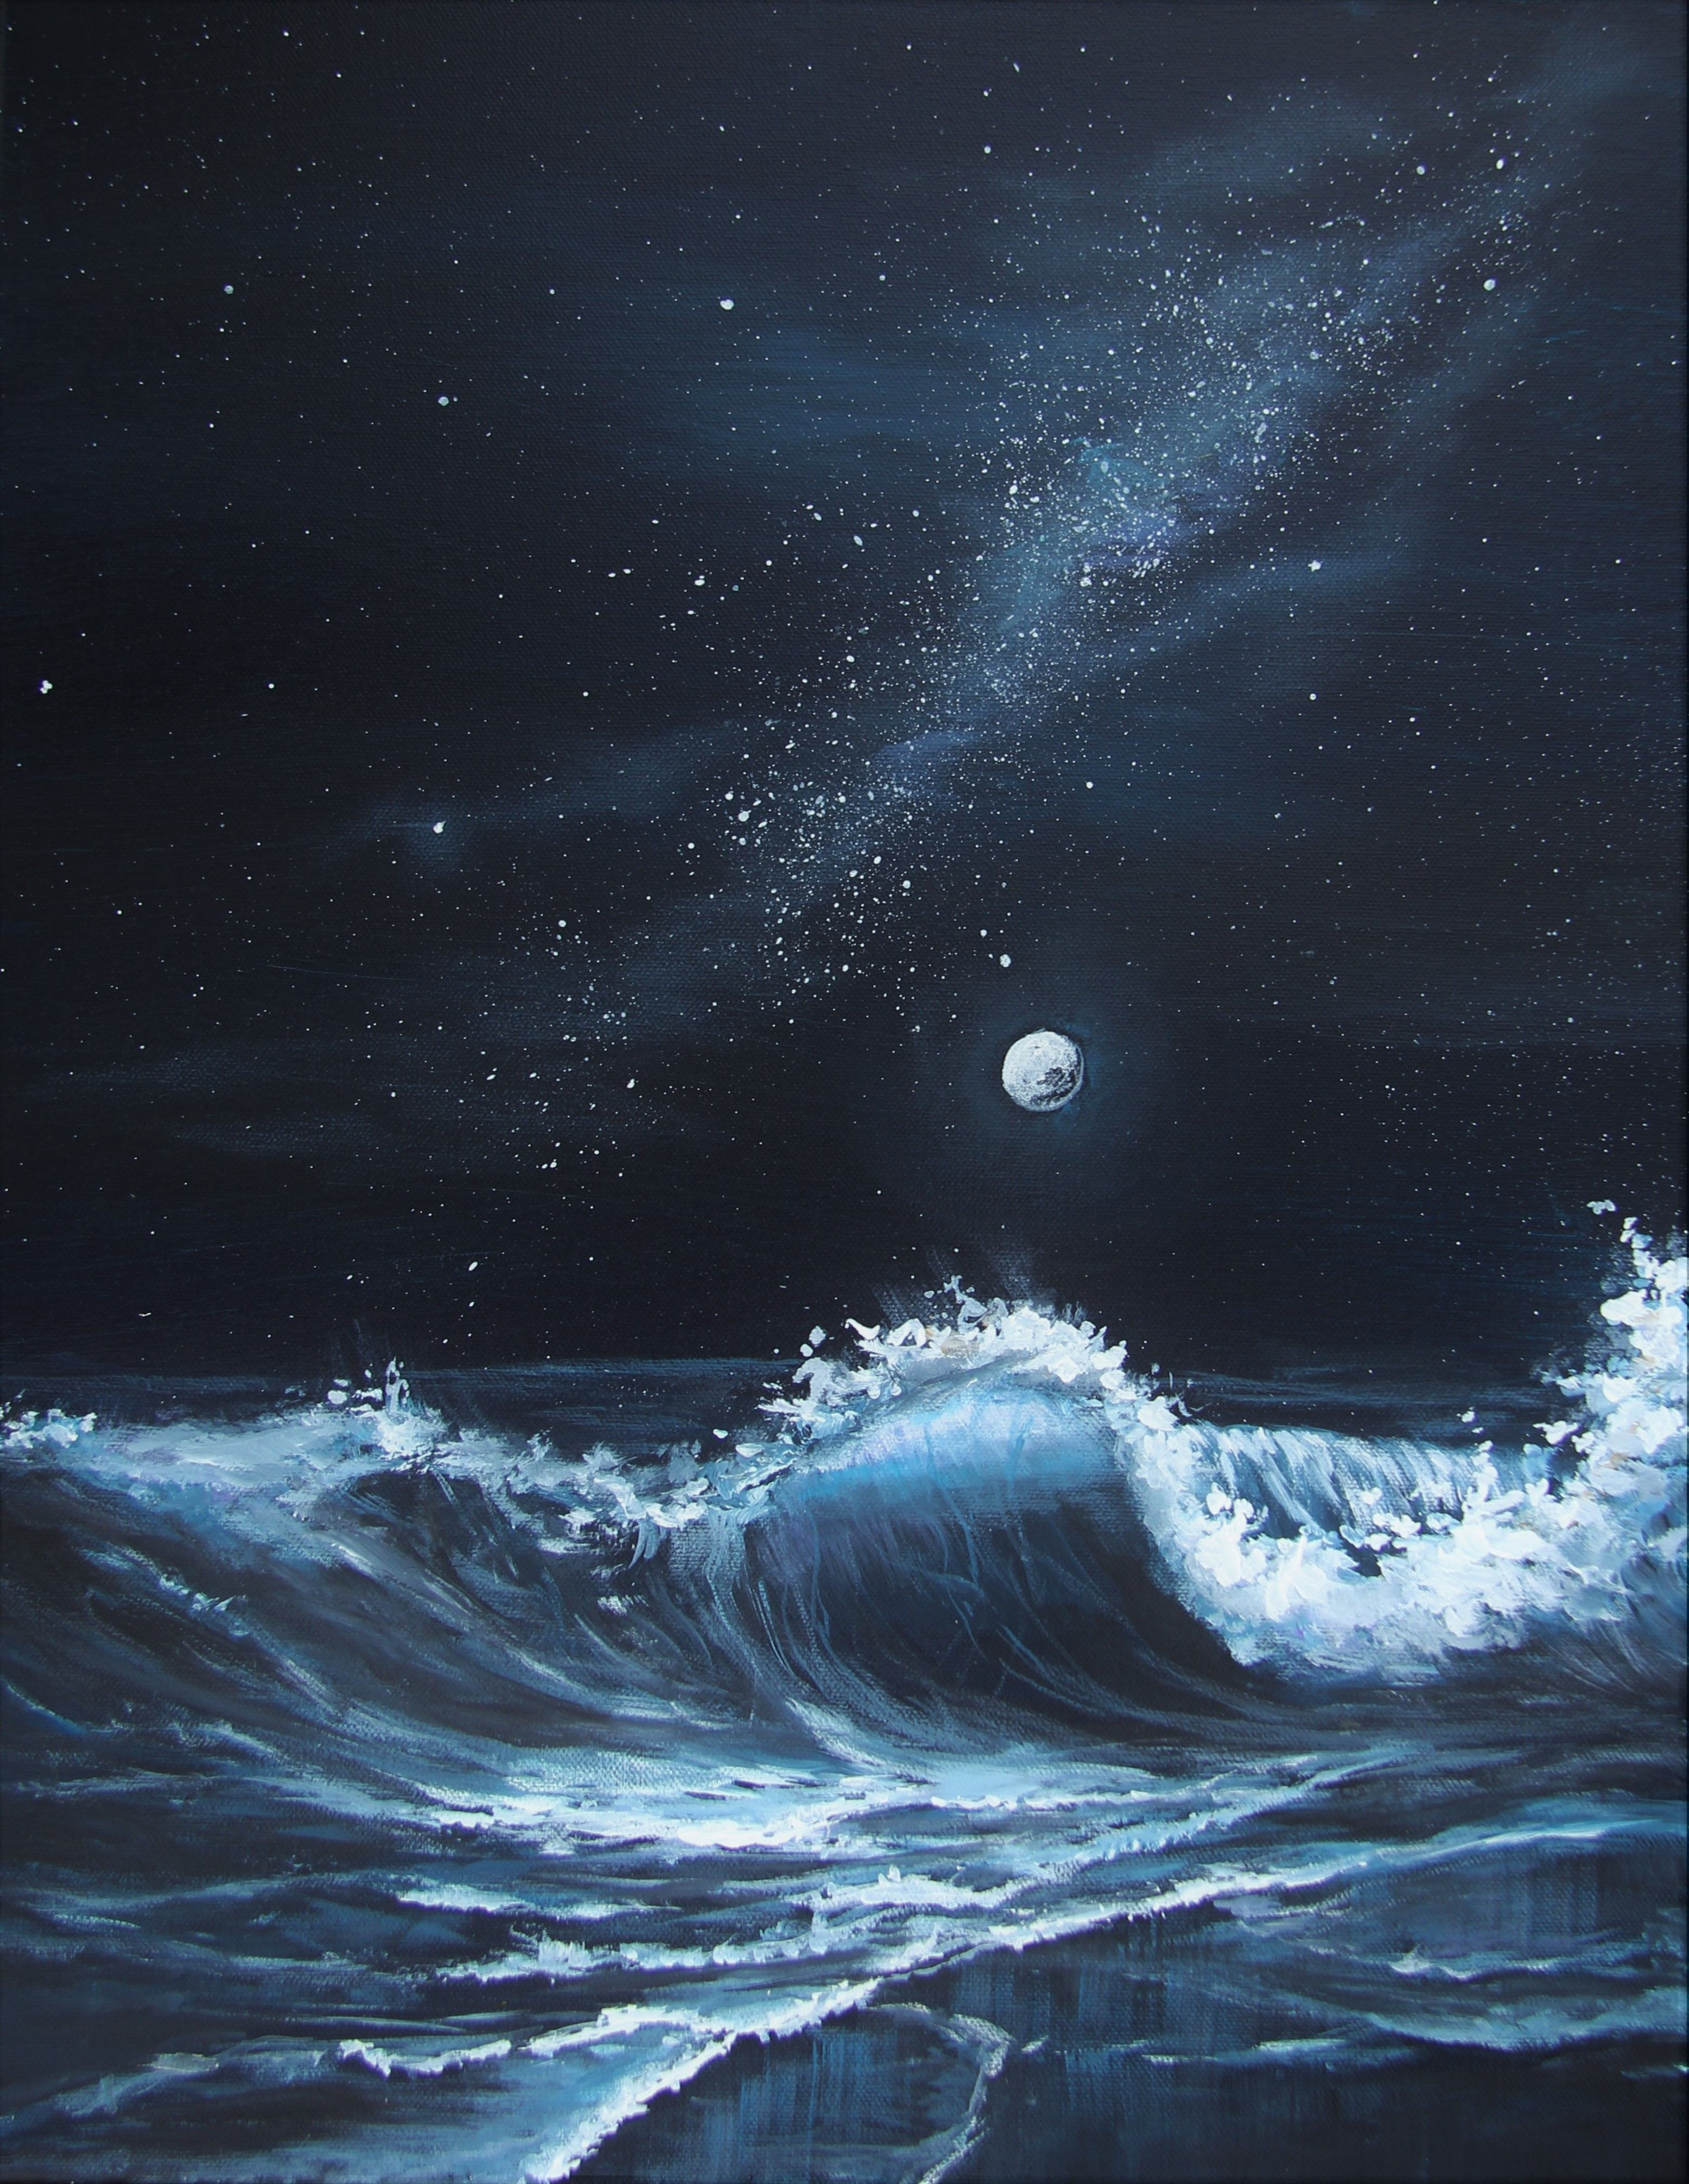 Learn How To Paint The Ocean Waves And Gorgeous Night Sky In